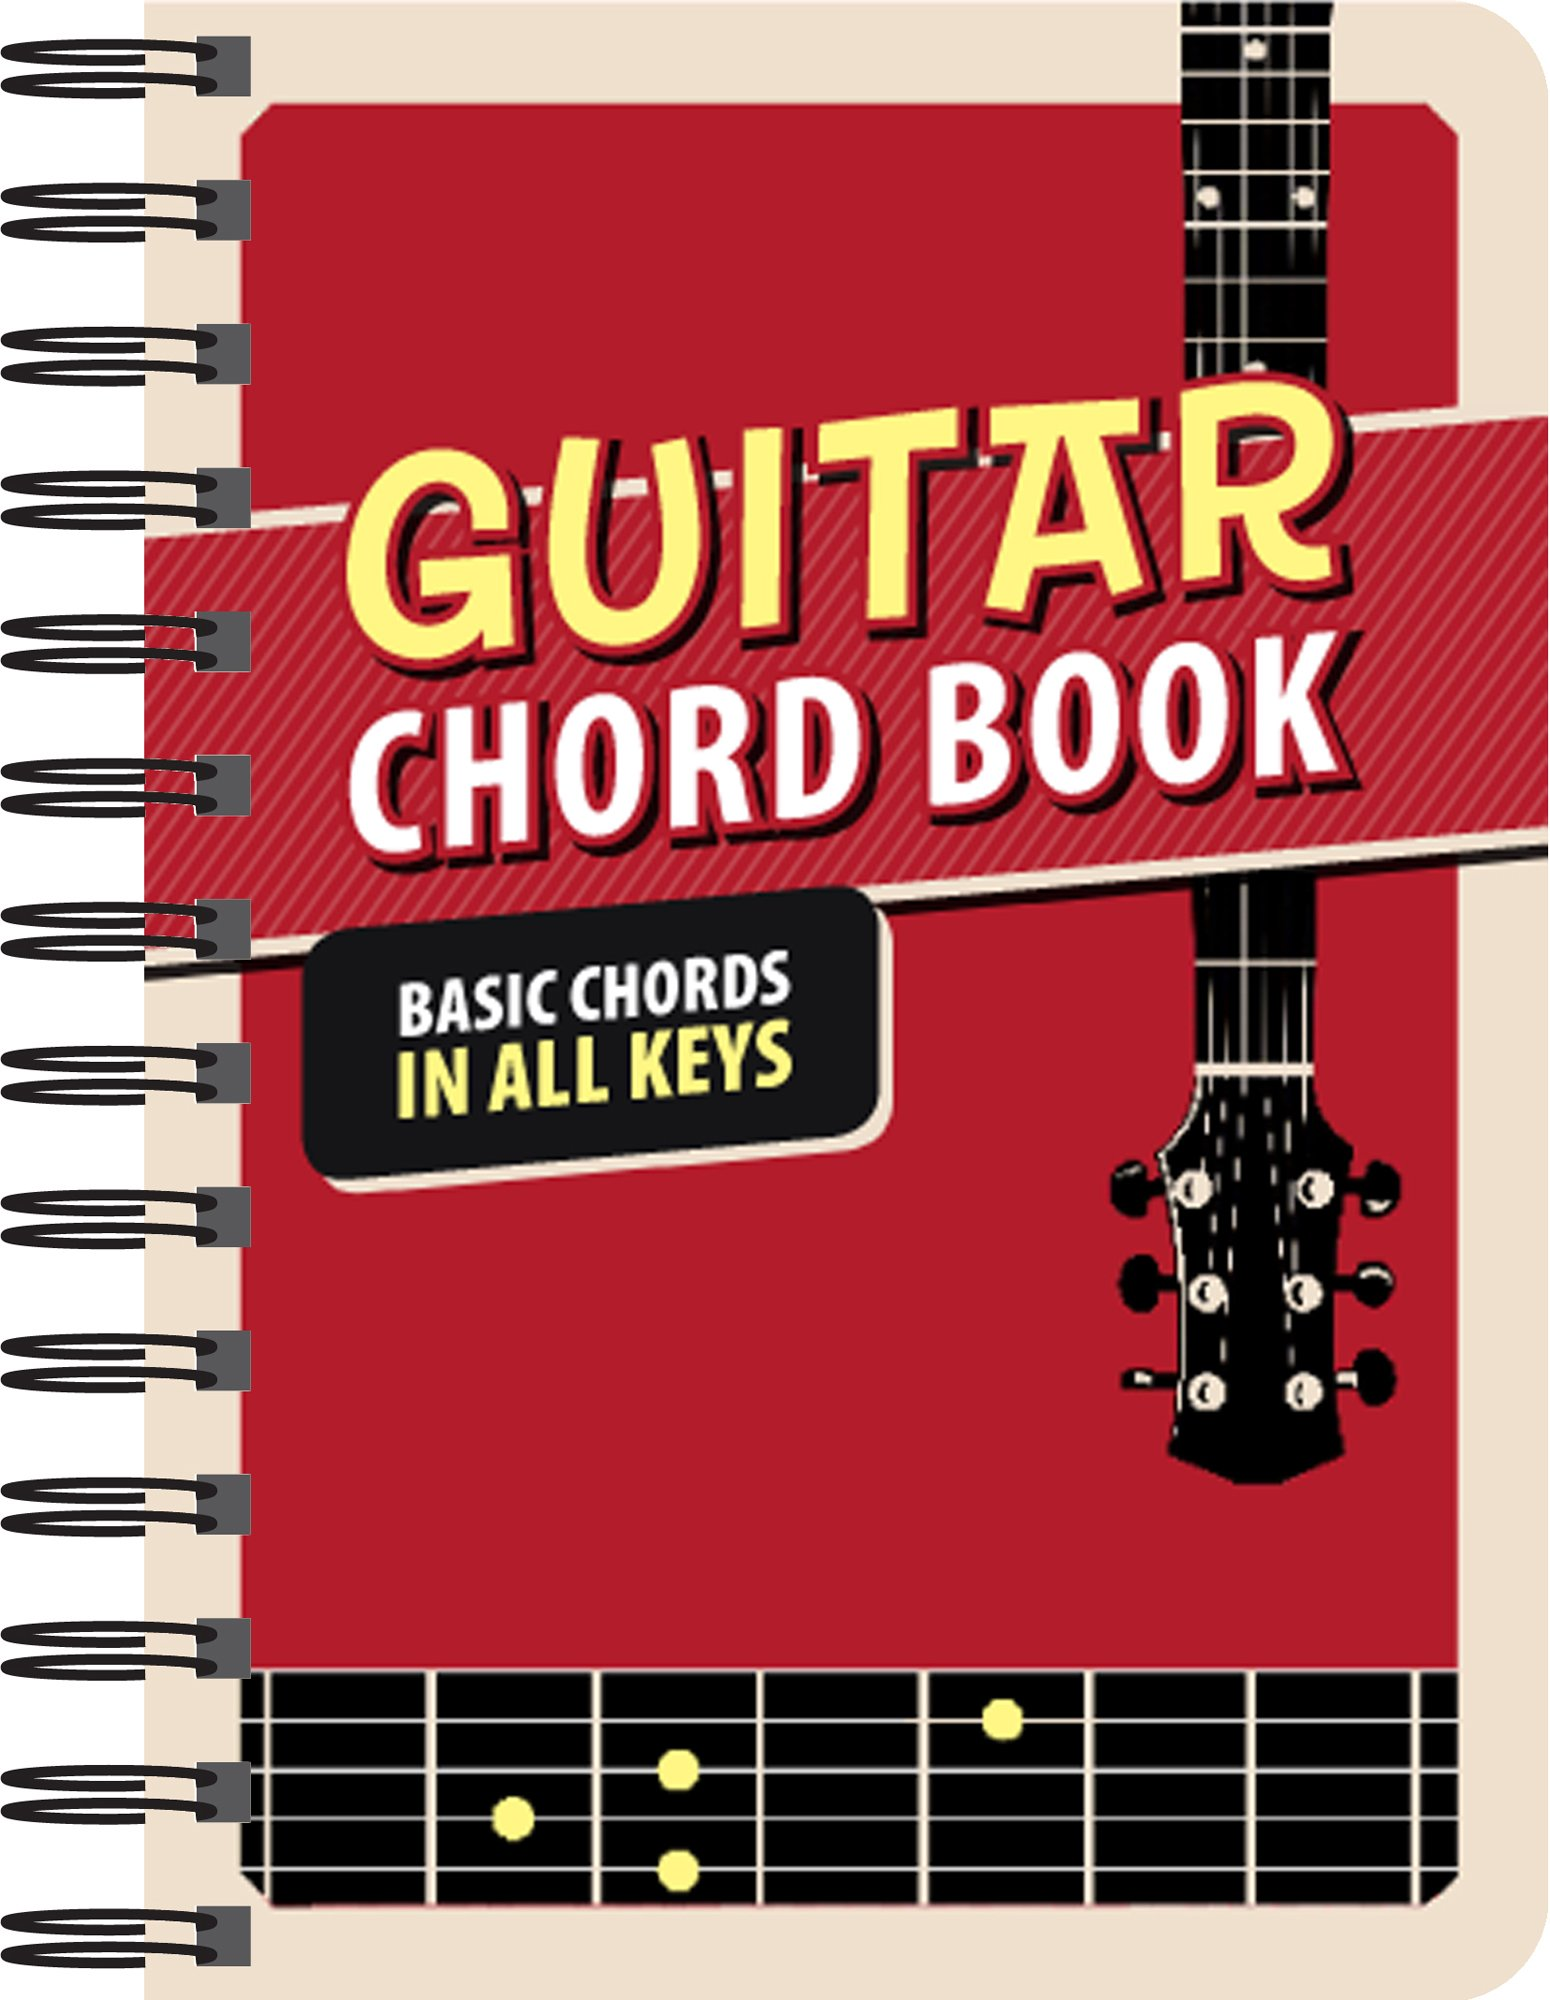 Guitar Chord Book Basic Chords In All Keys Editors Of Publications